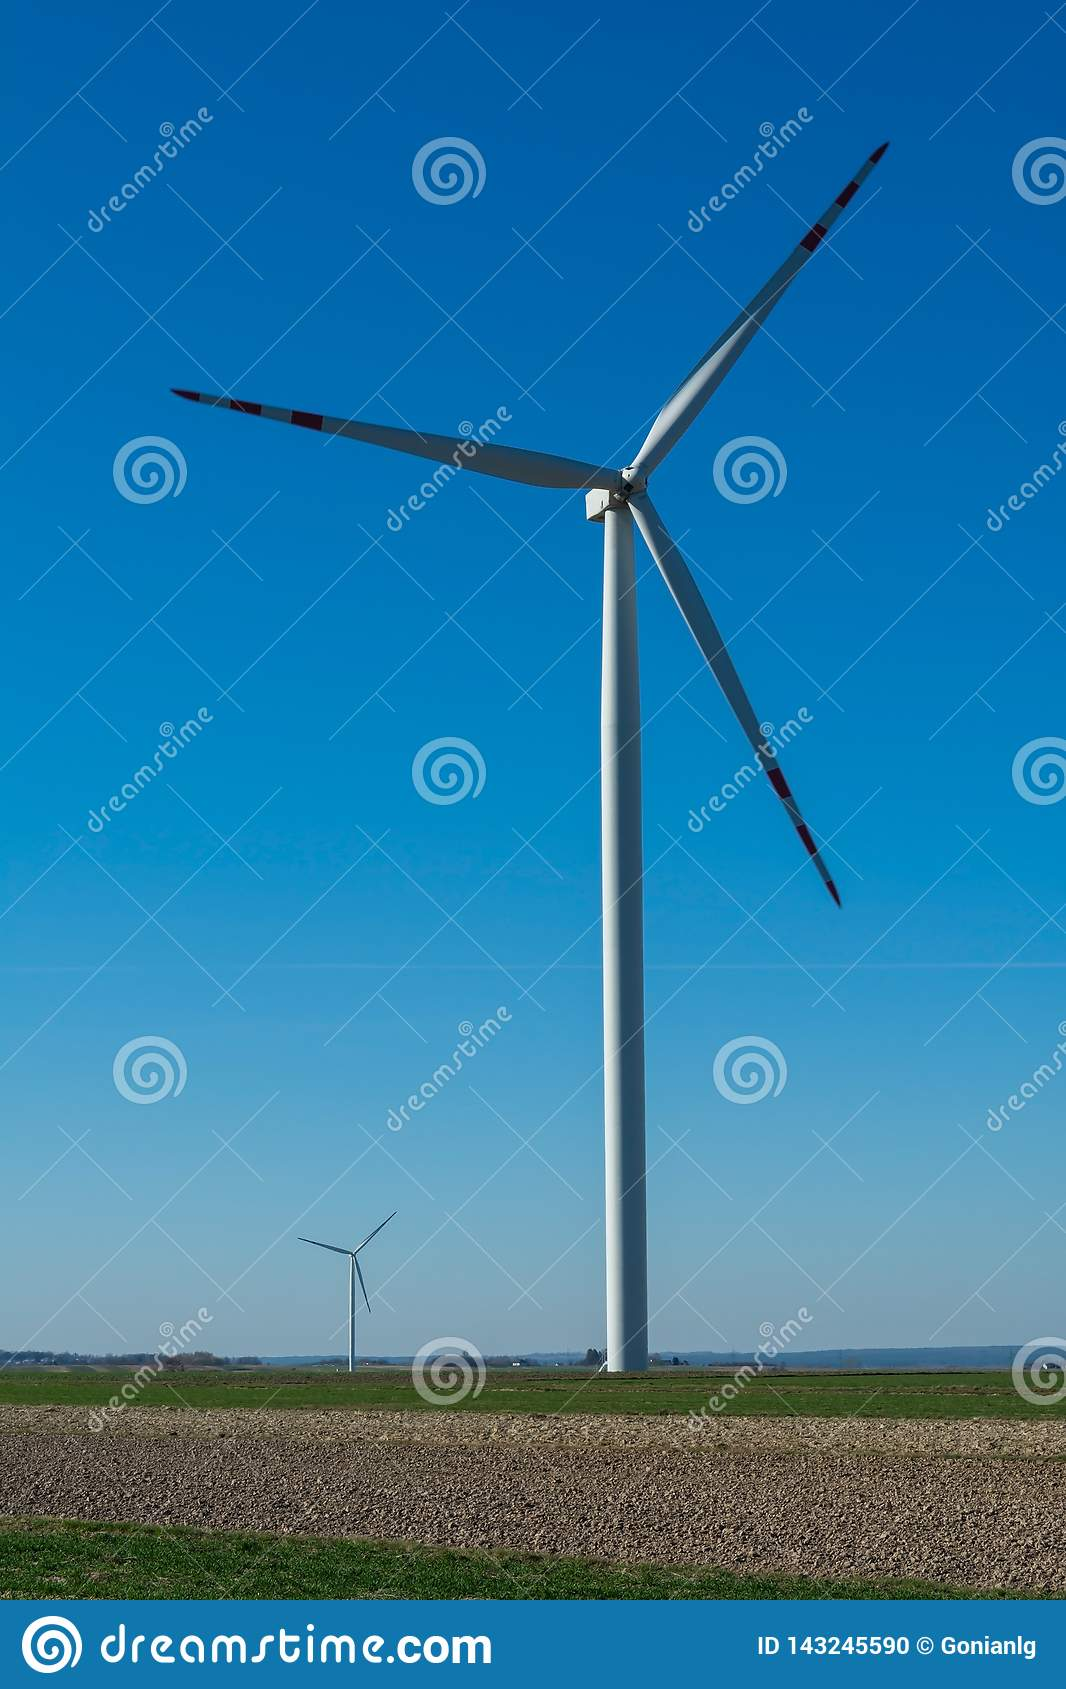 Field with windmills for electric power. Clean energy produced by the wind. Extraction of energy from the air